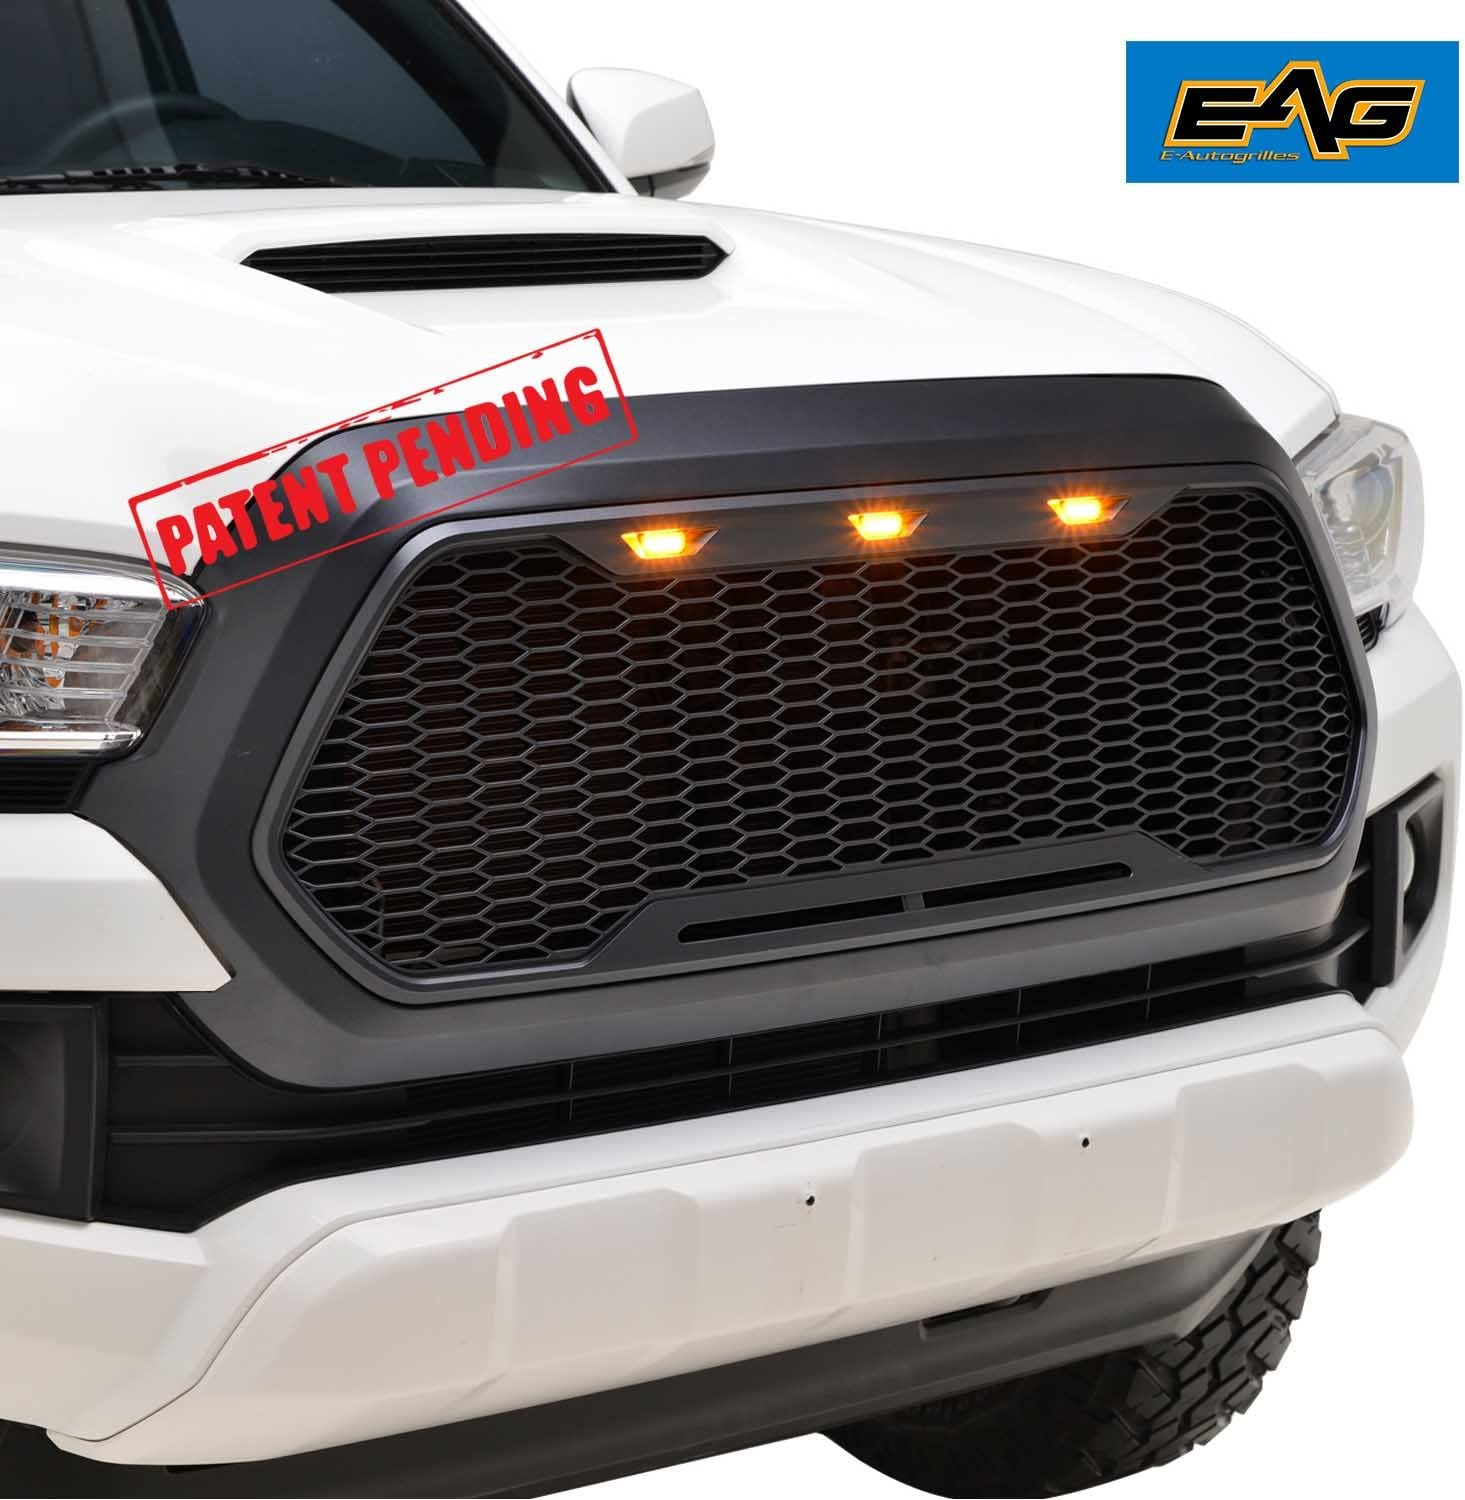 with Amber LED Lights Fit for 14-18 Toyota Tundra Matte Black EAG Replacement ABS Grille Upper Front Hood Grill